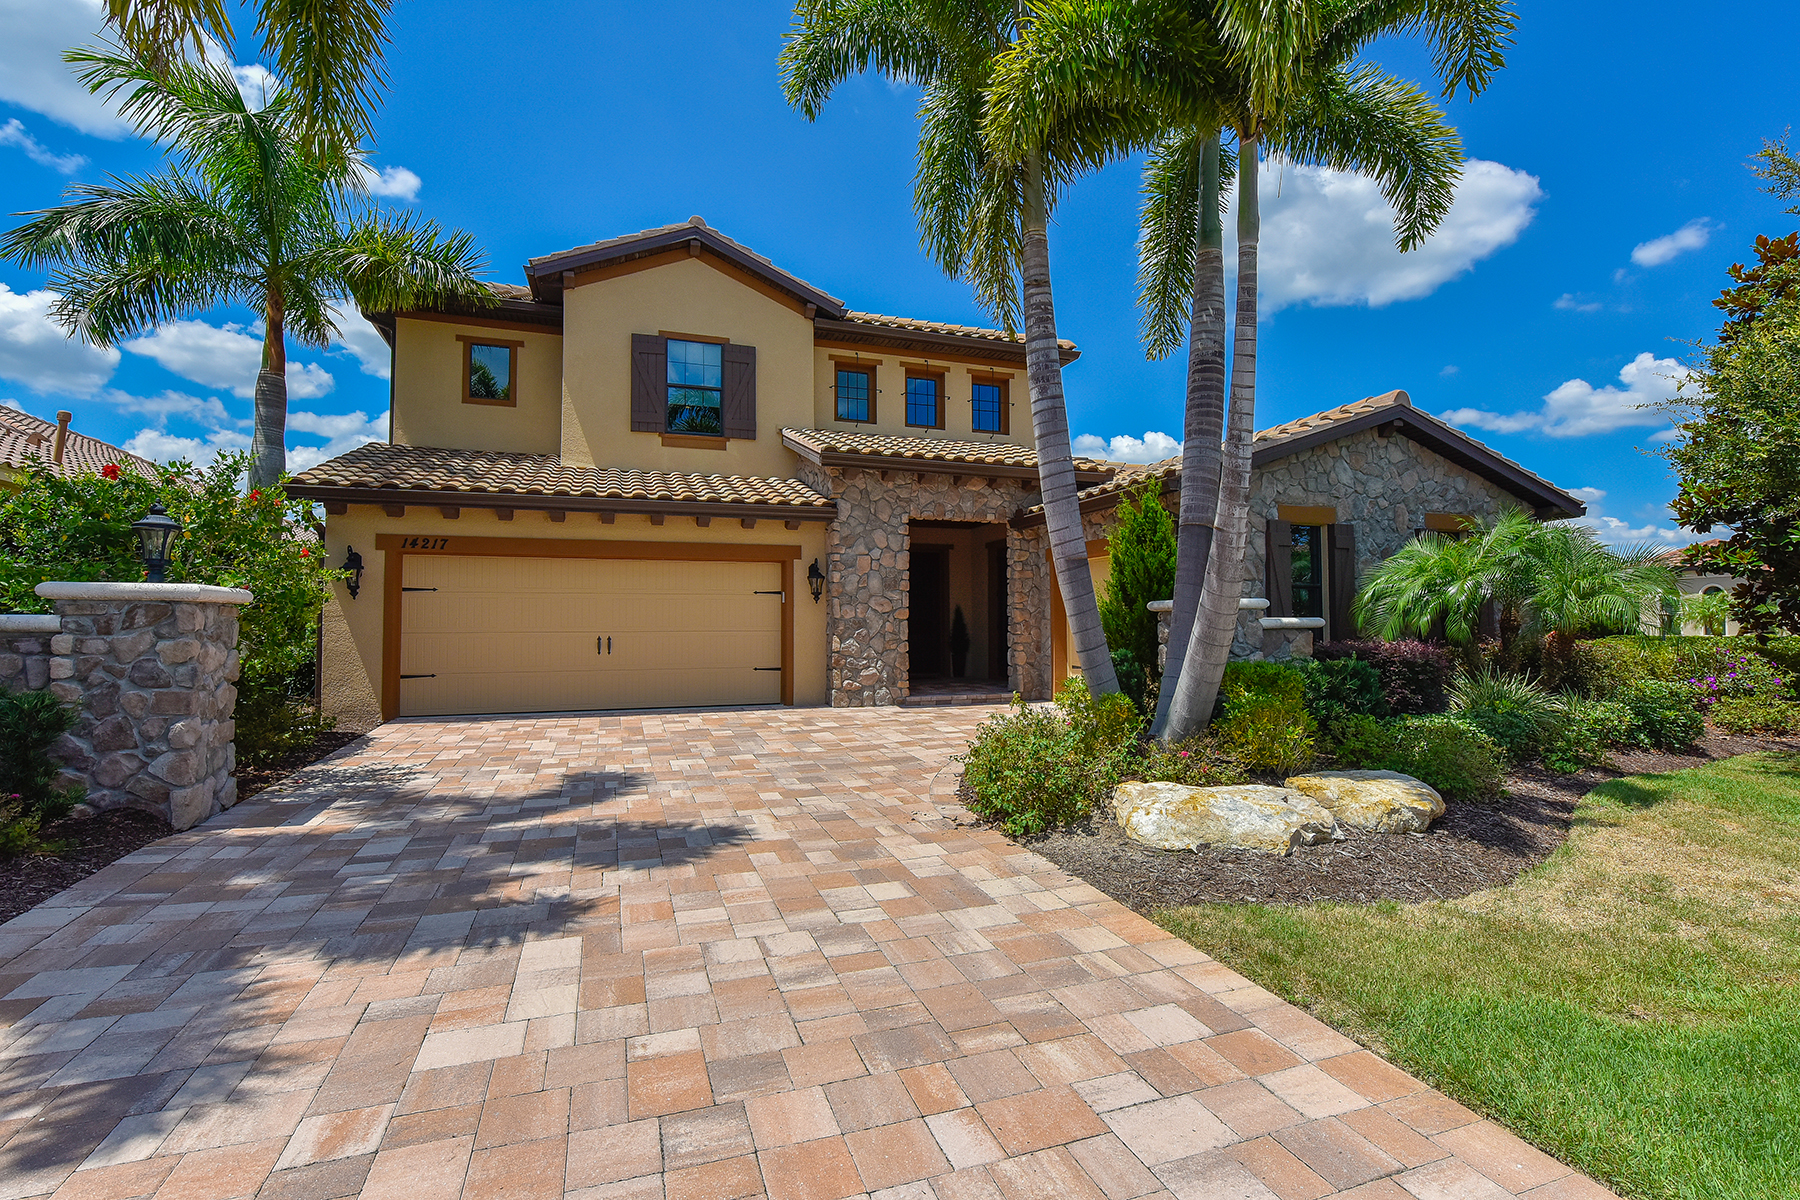 Casa Unifamiliar por un Venta en LAKEWOOD RANCH - COUNTRY CLUB EAST 14217 Bathgate Terr Bradenton, Florida, 34202 Estados Unidos